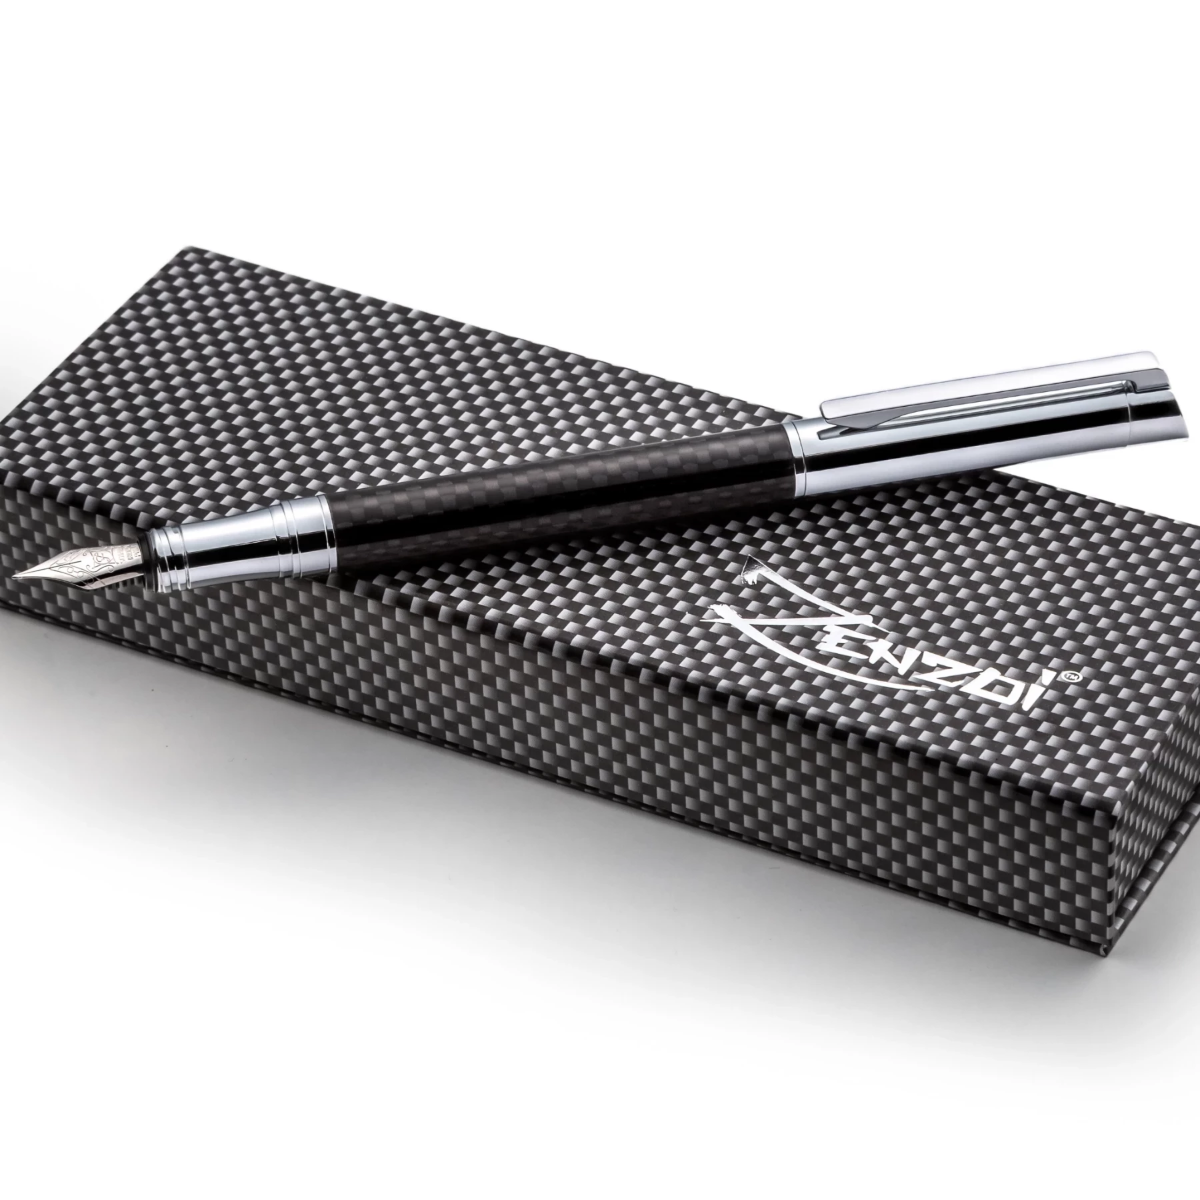 Carbon Fiber Fountain Pen Set - Modern Cap Design - W/ German Schmidt Fine Nib & Gift Box Case